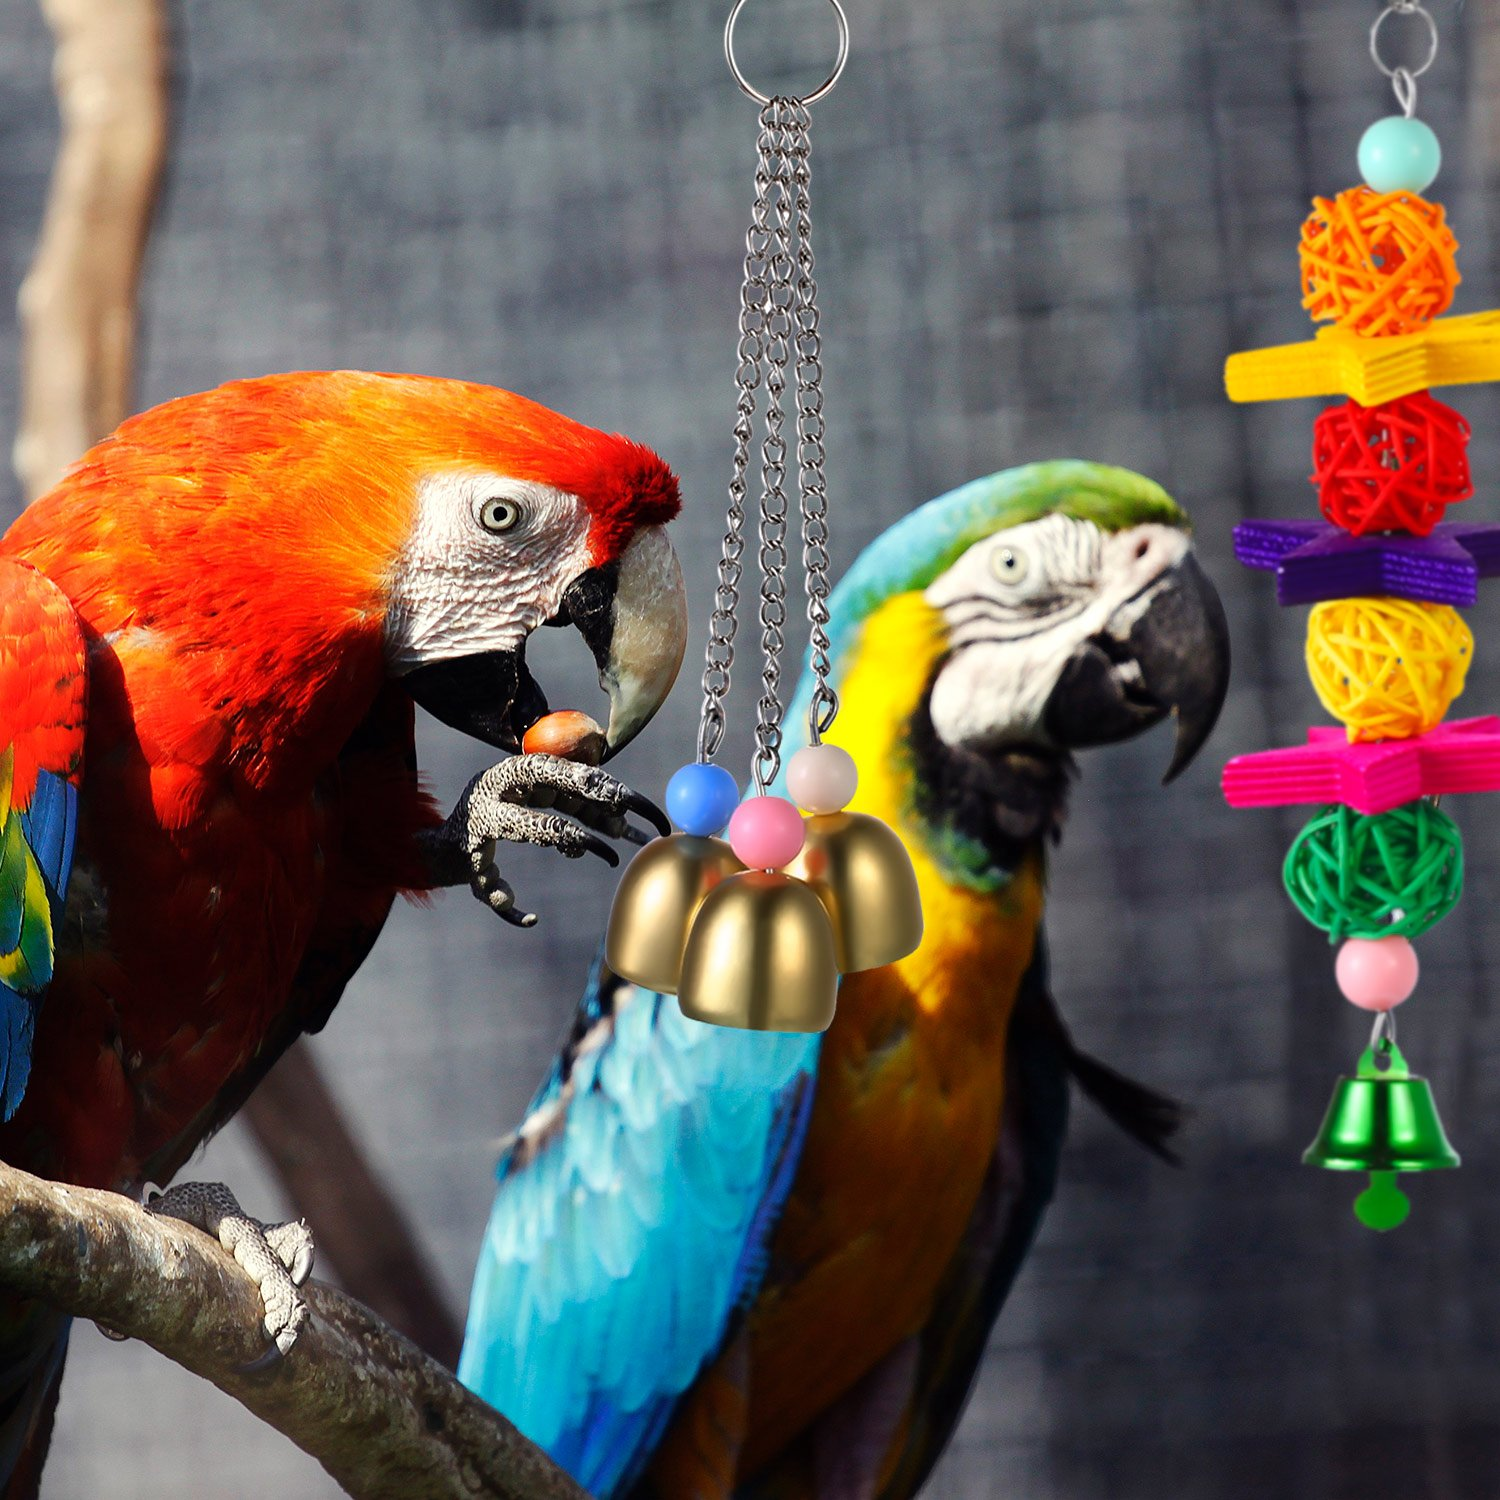 Zhehao 5 Pieces Bird Swing Toys Bell with Colorful Natural Wood Hammock Hanging Perch for Small and Medium Birds Parakeets Cockatiels Conures Macaws Parrots Love Birds Finches by Zhehao (Image #4)